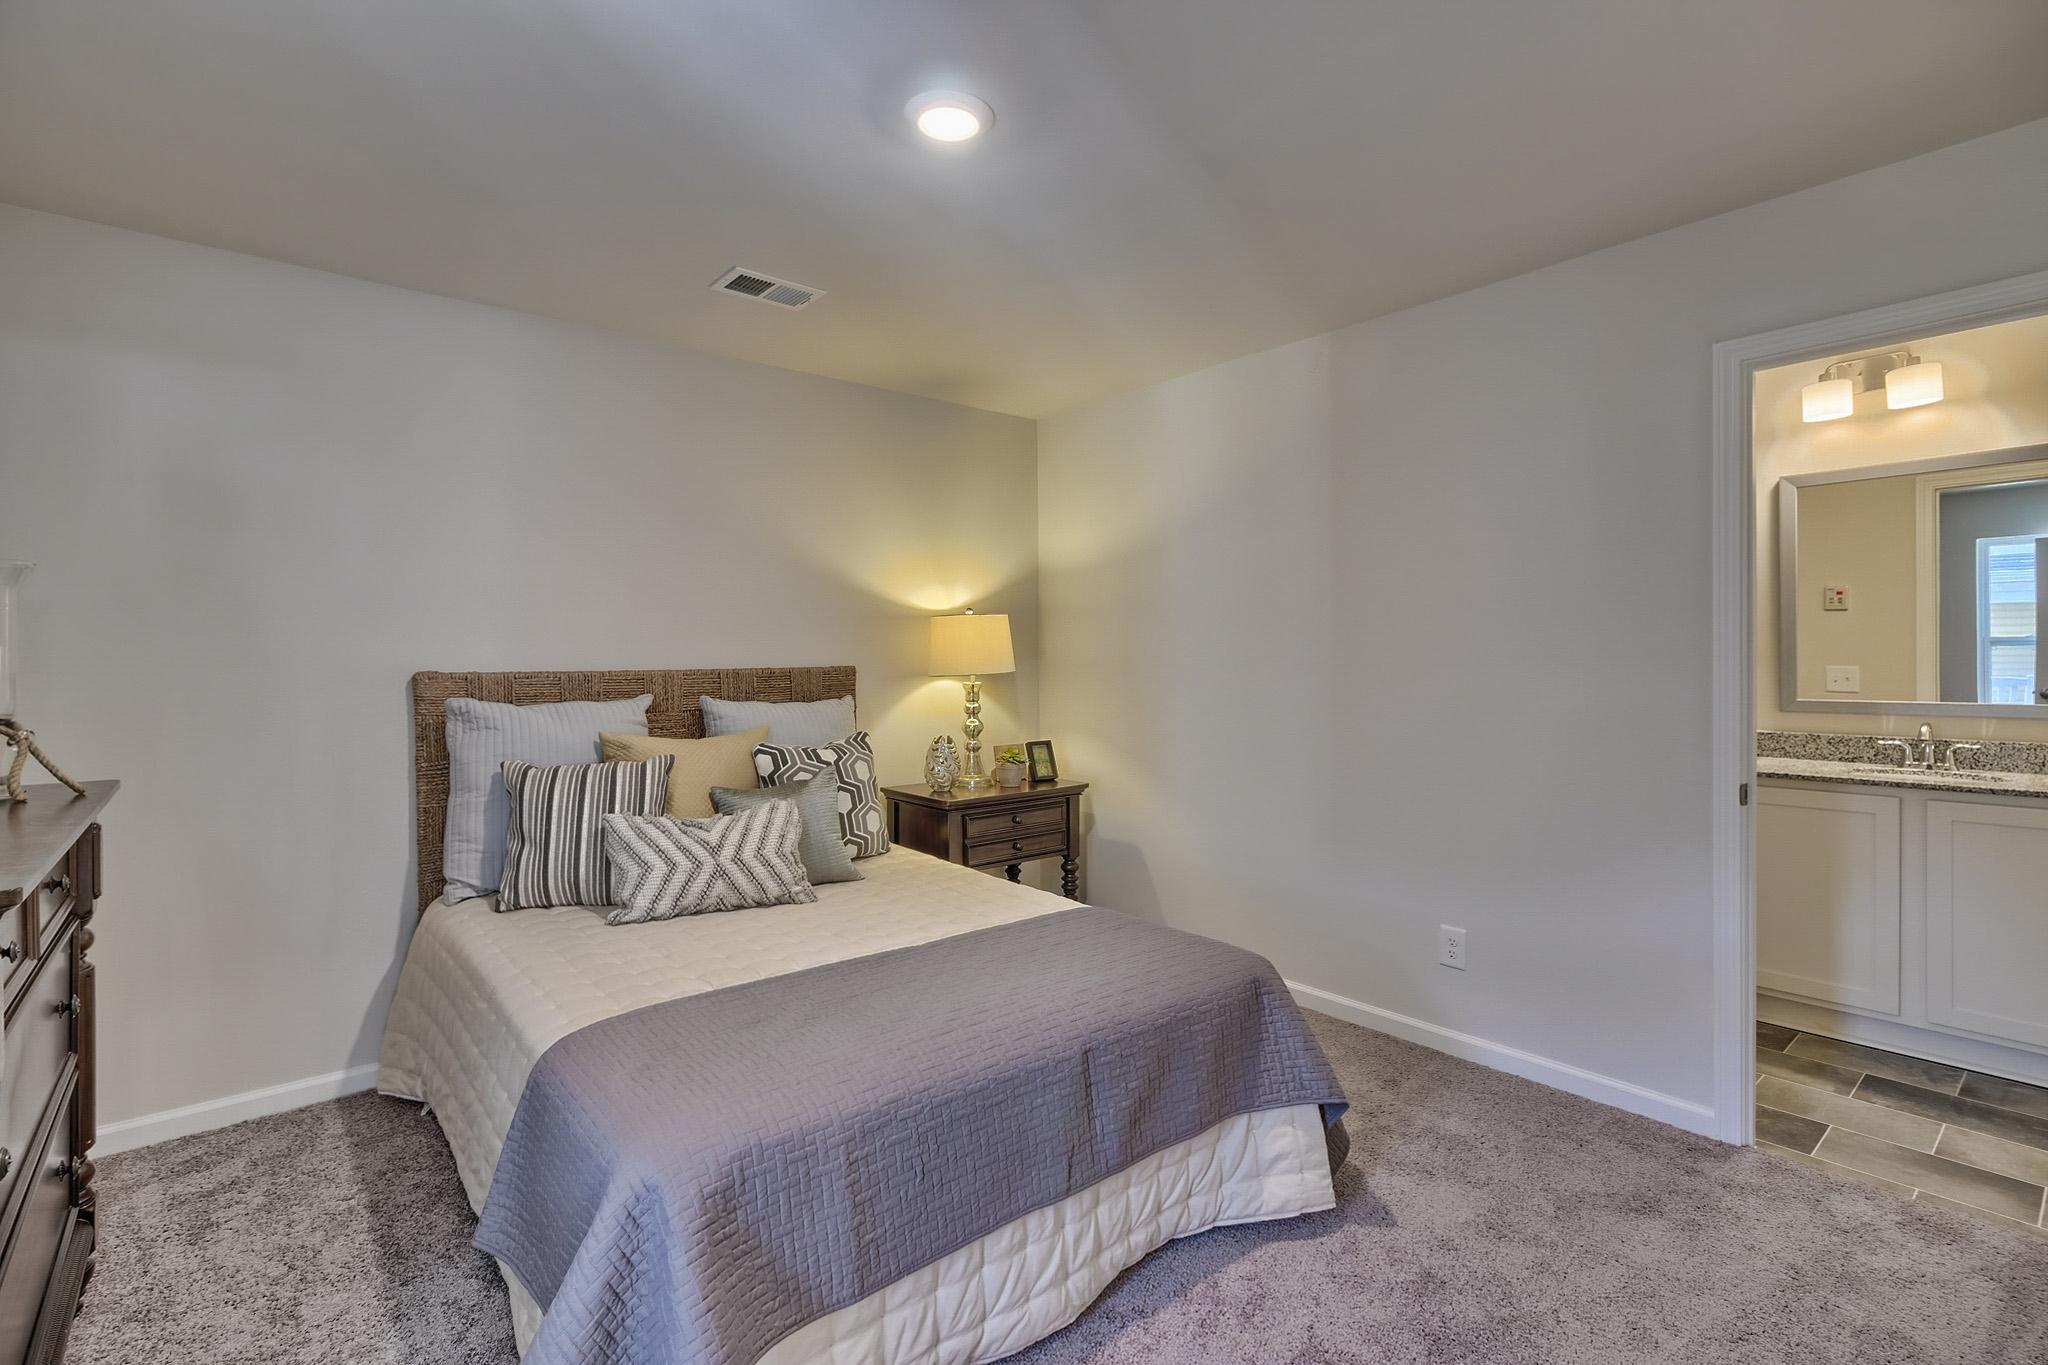 Bedroom featured in the Dogwood By McGuinn Hybrid Homes in Columbia, SC